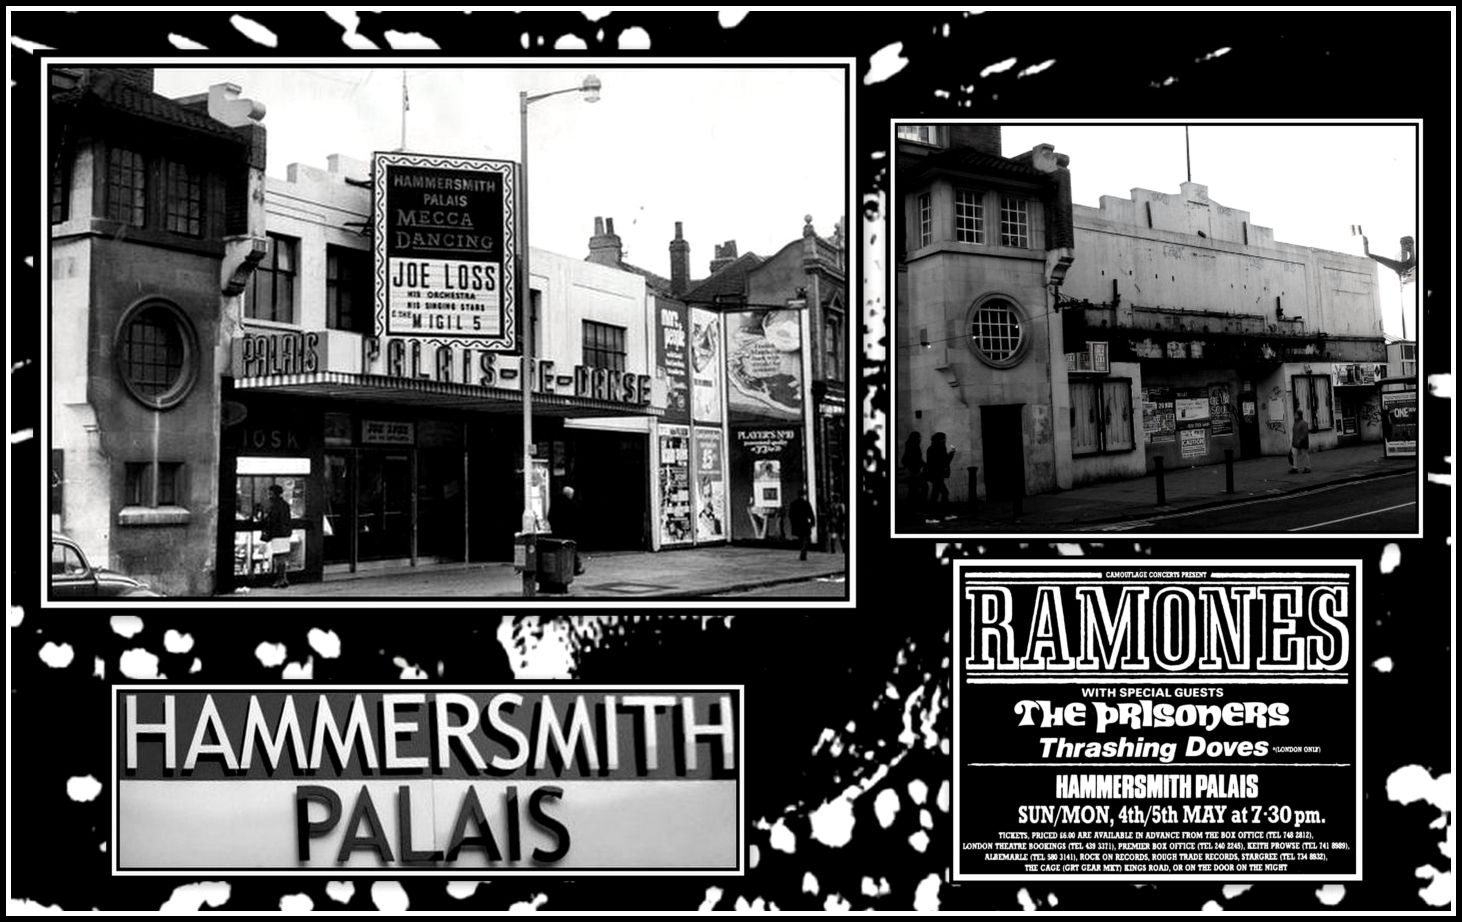 Hammersmith Palais Collage